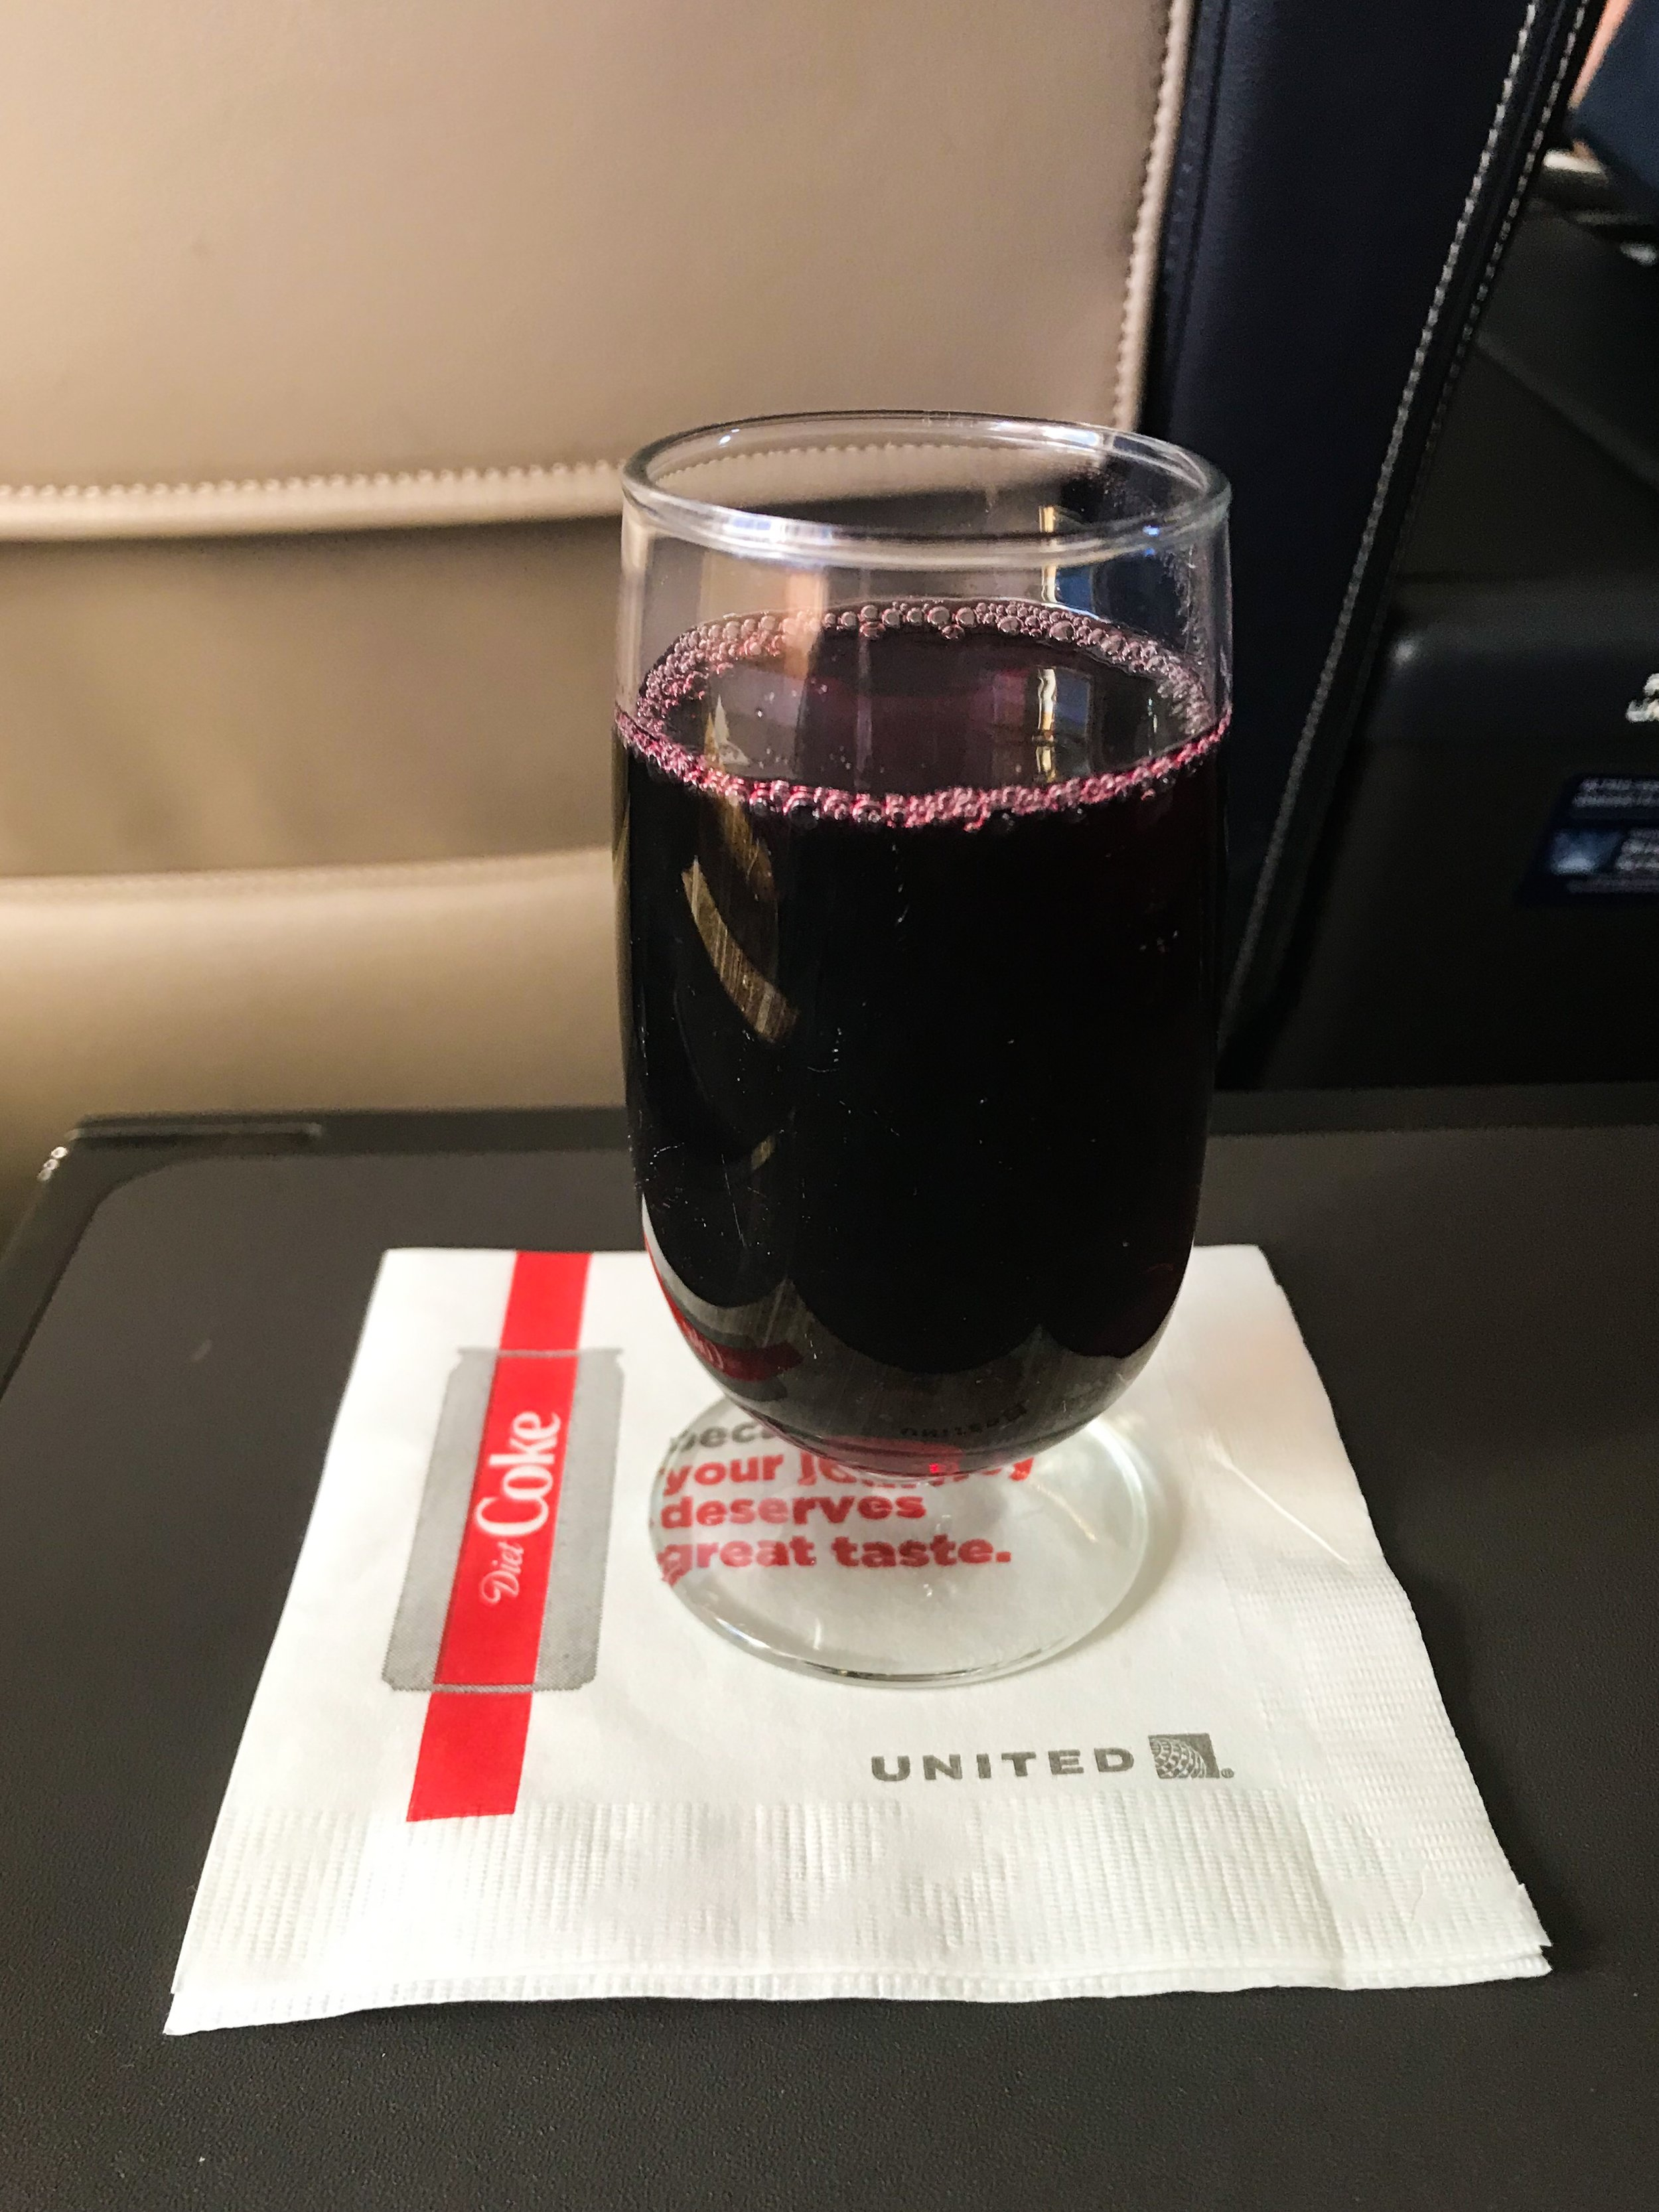 The flight attendants were very attentive and constantly walked around with bottles of wine to keep passengers' glasses full.